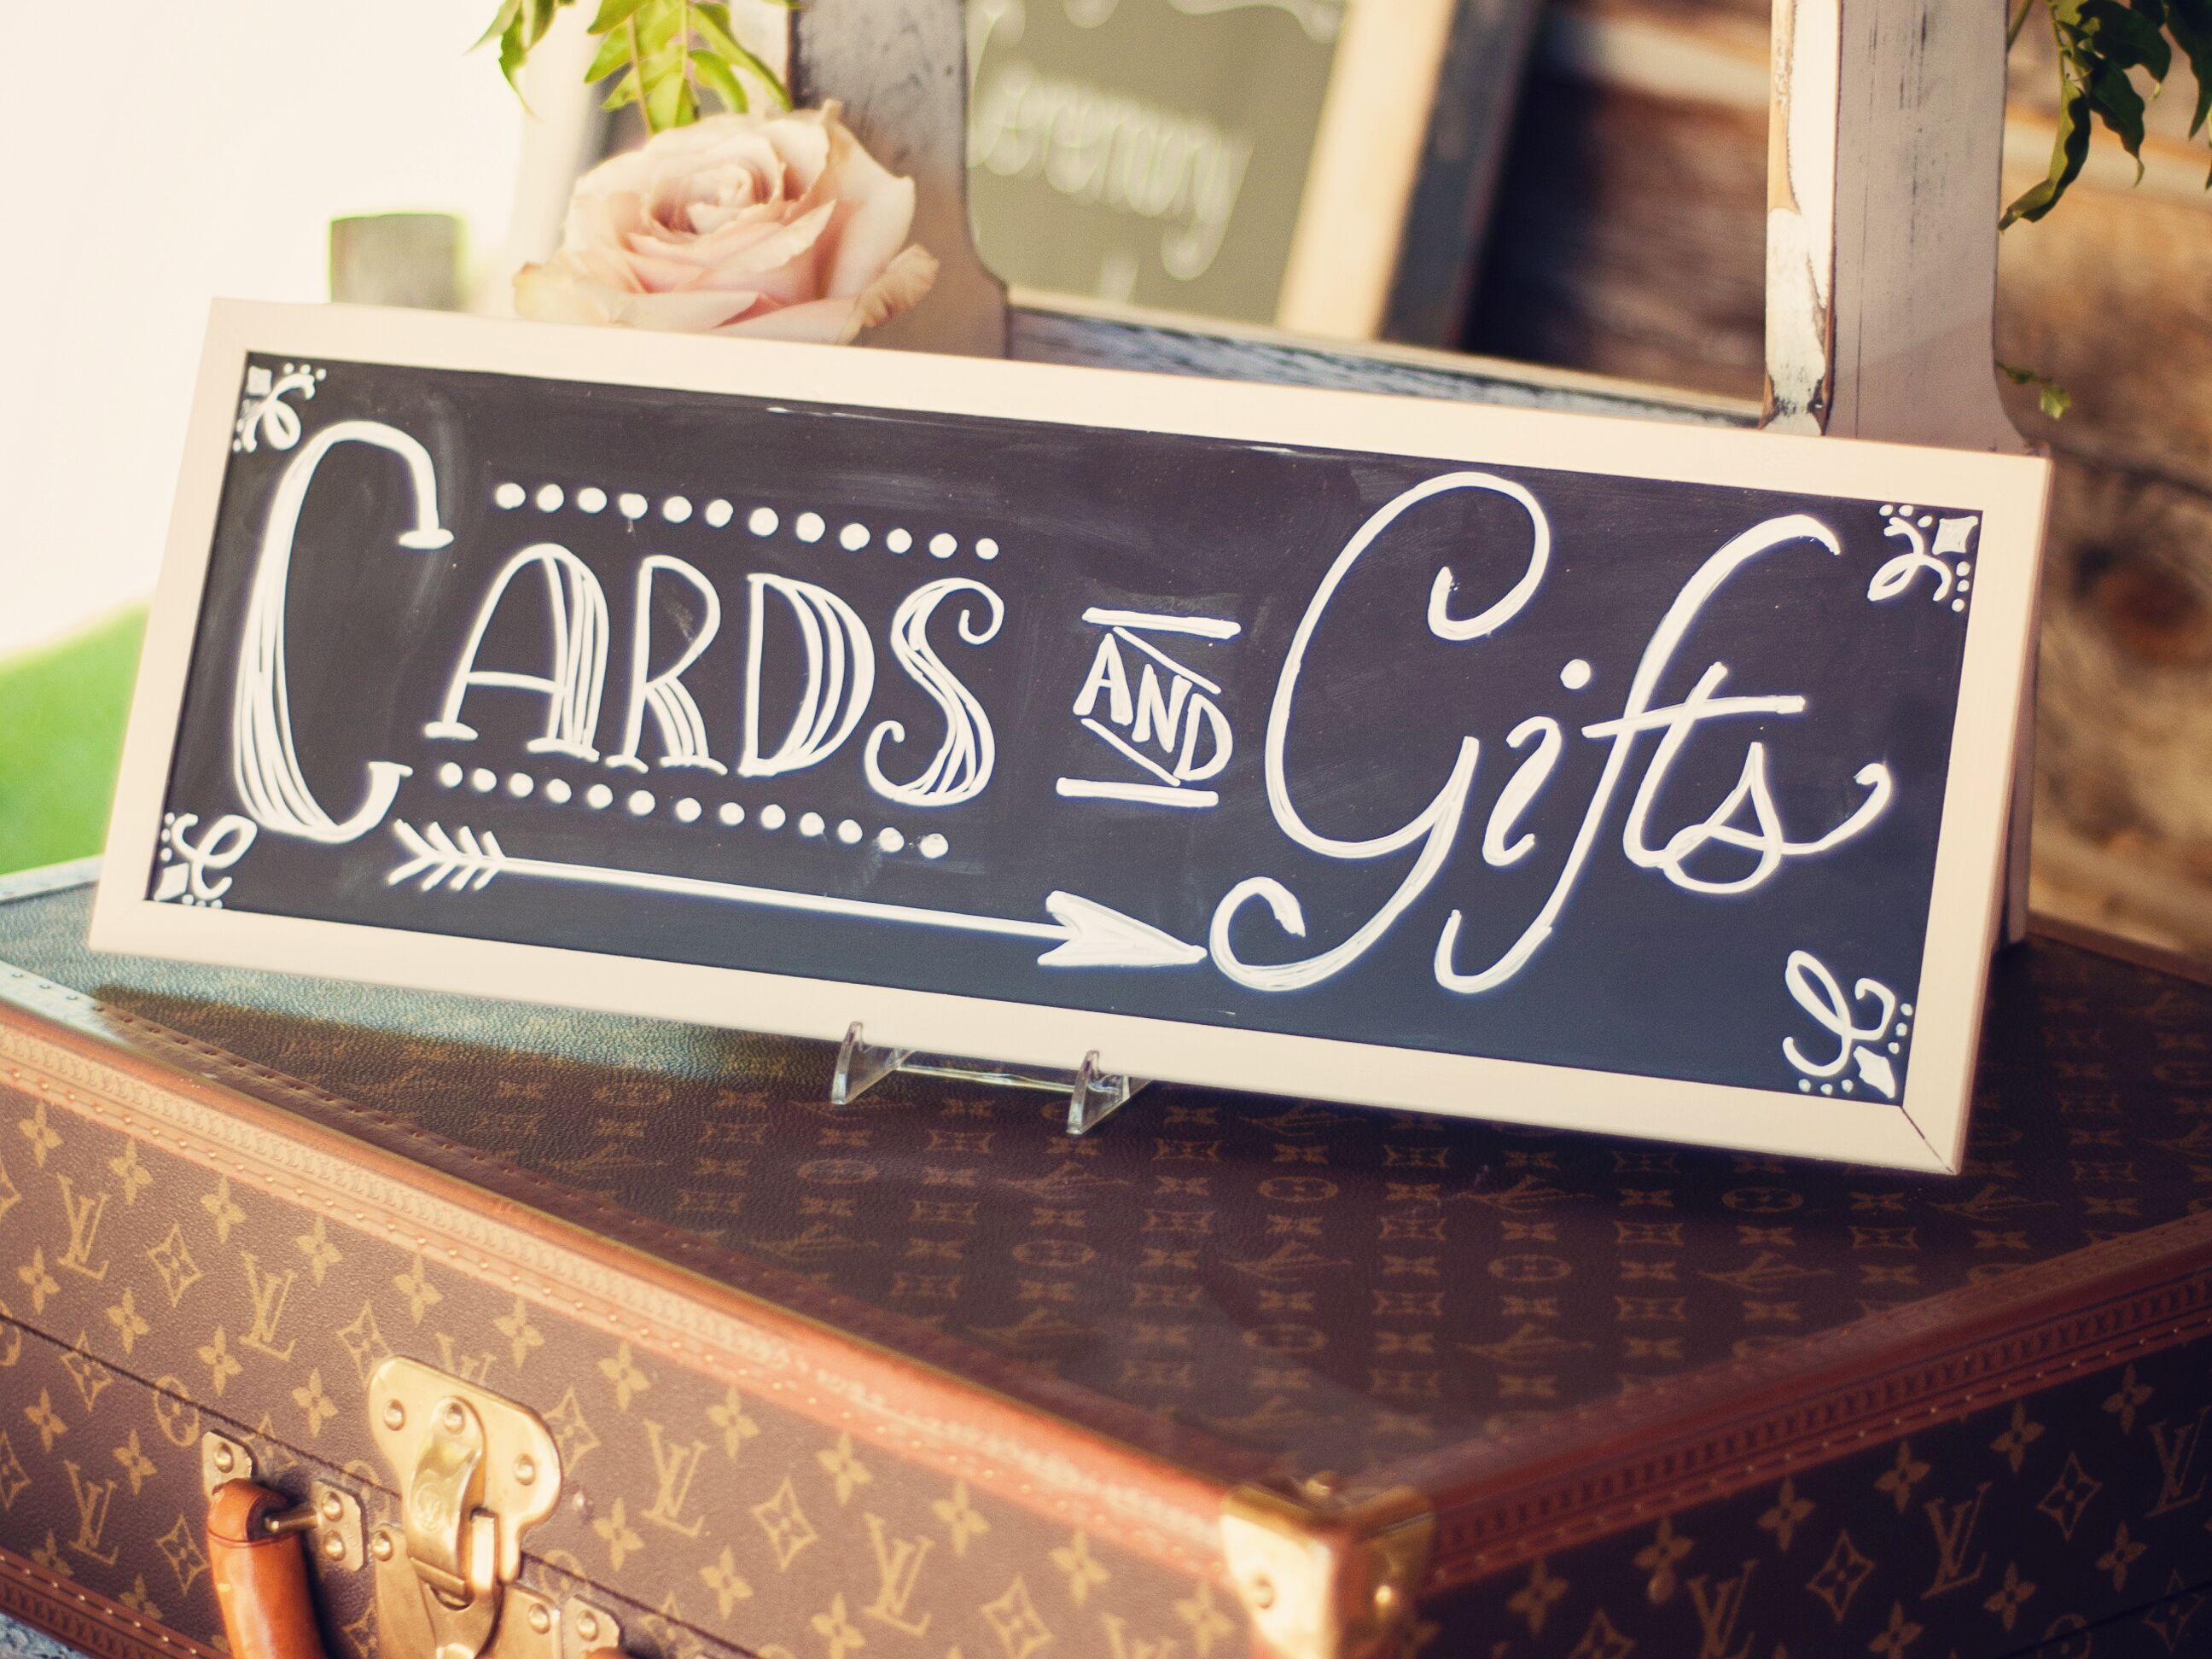 Wedding Guest Etiquette Gift Money : Chalkboard cards and gifts sign at wedding reception